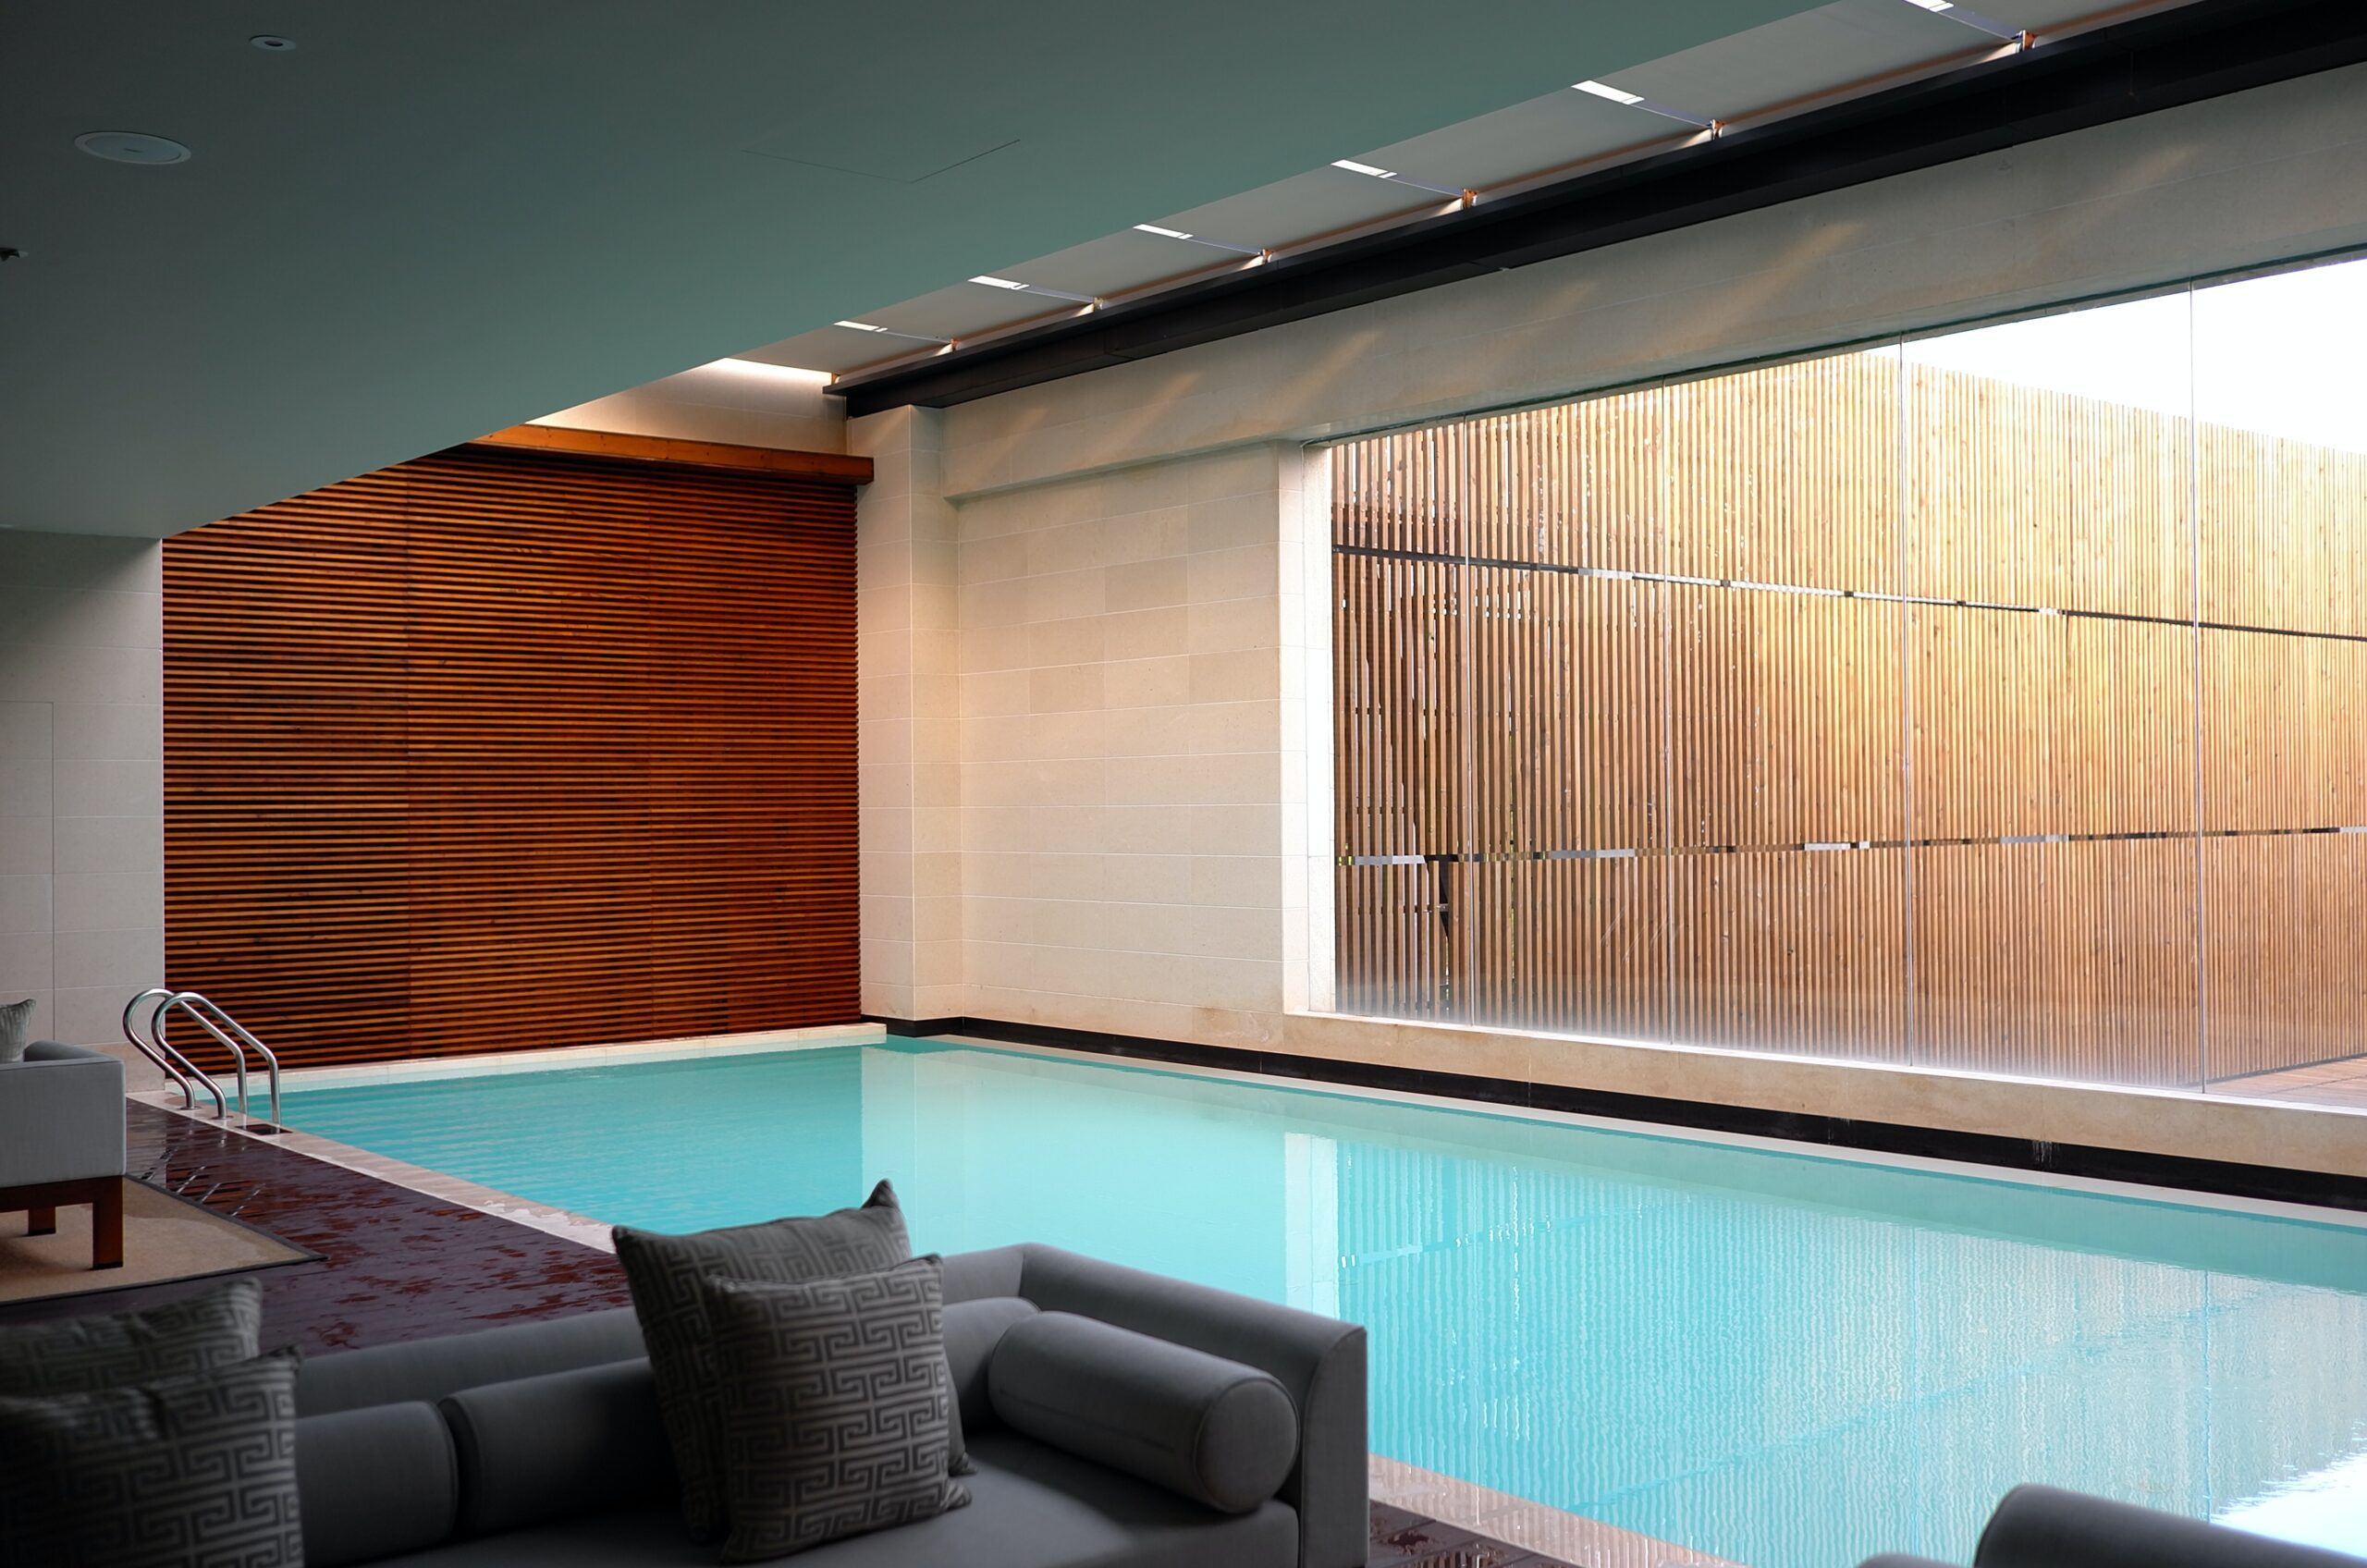 li-yang-Indoor pool contemporary home with bamboo blinds-unsplash